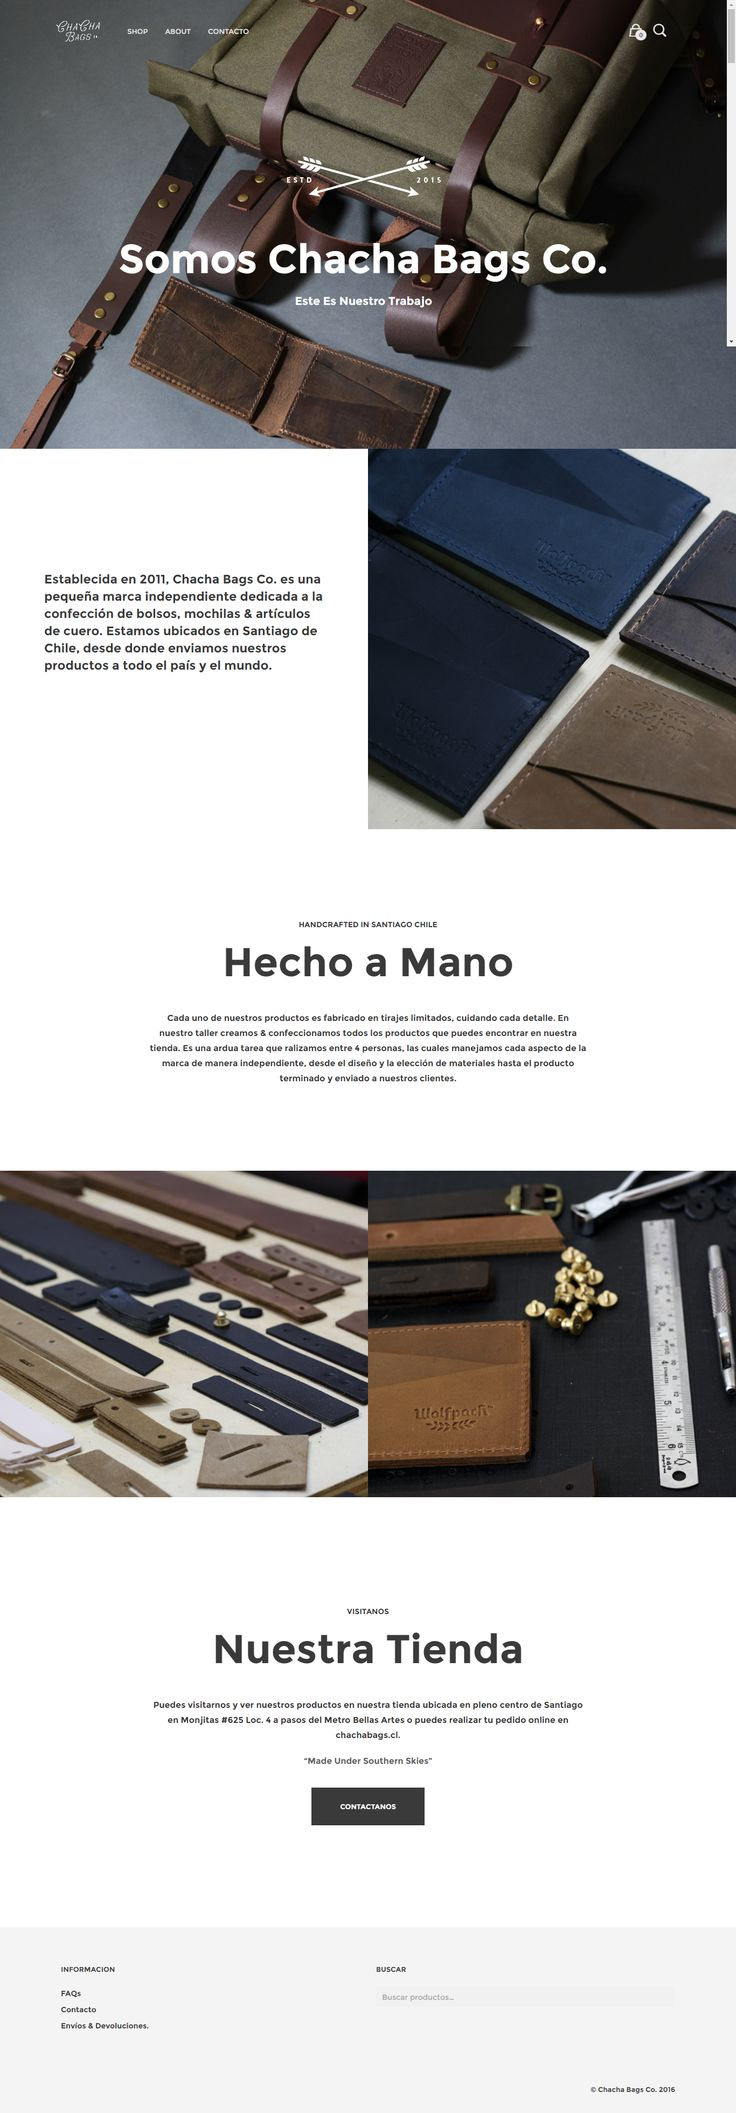 chachabags.cl website, built using Mr Tailor WordPress theme http://themeforest.net/item/mr-tailor-responsive-woocommerce-theme/7292110?&utm_source=pinterest.com&utm_medium=social&utm_content=chacha-bags&utm_campaign=showcase #bags #handmade #website #design #wordpress #onlinestore